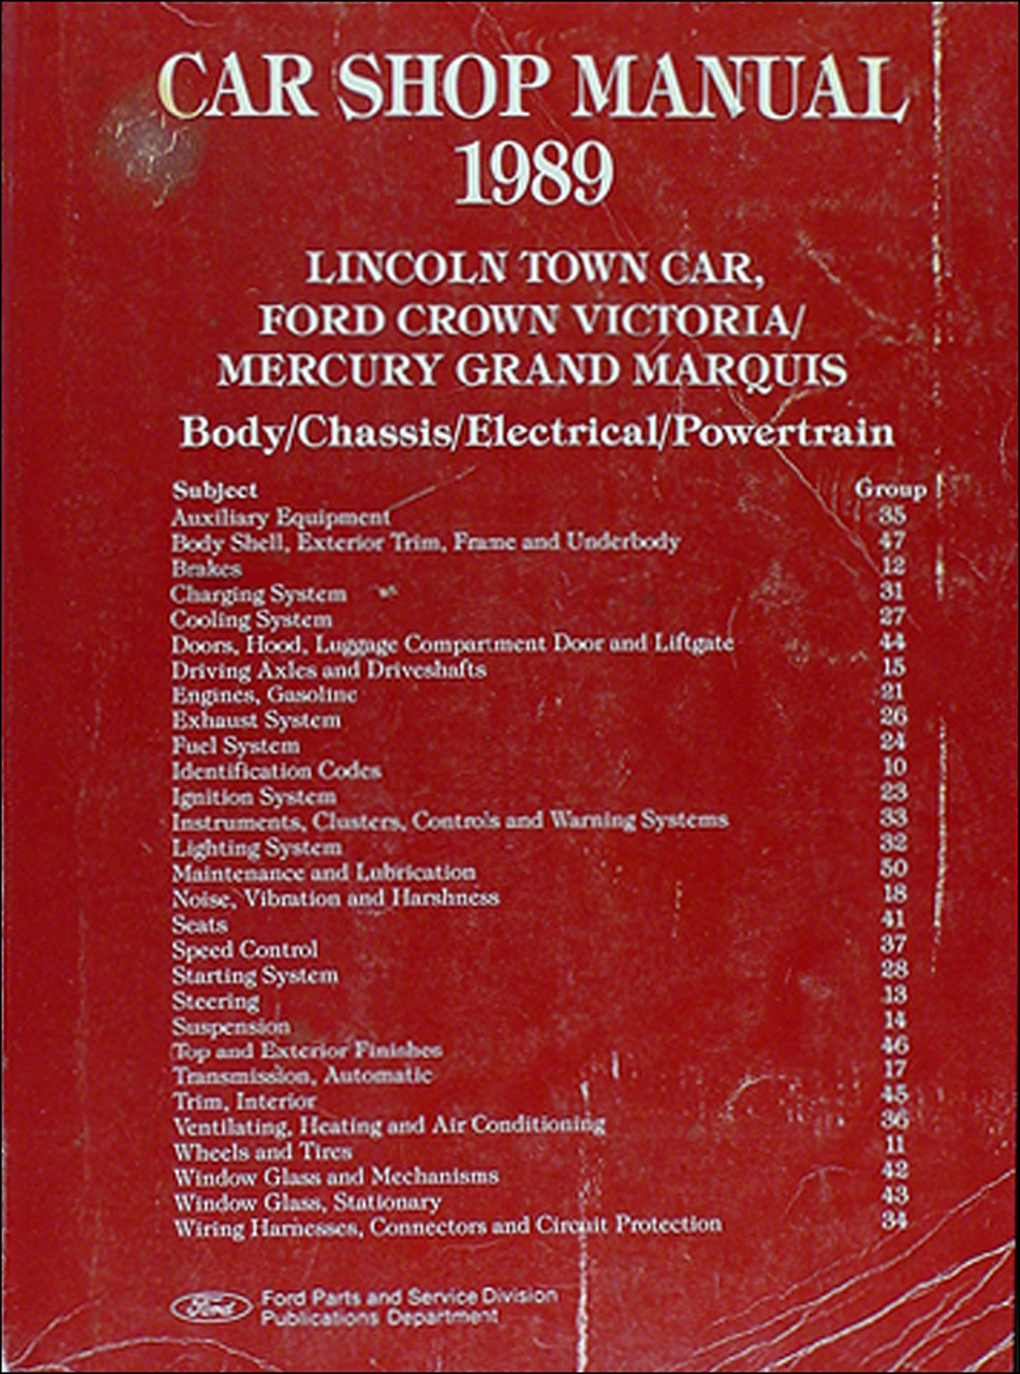 1989 Lincoln Town Car Ford Crown Victoria Mercury Grand Marquis On A Fuse Box Amp Shop Manual